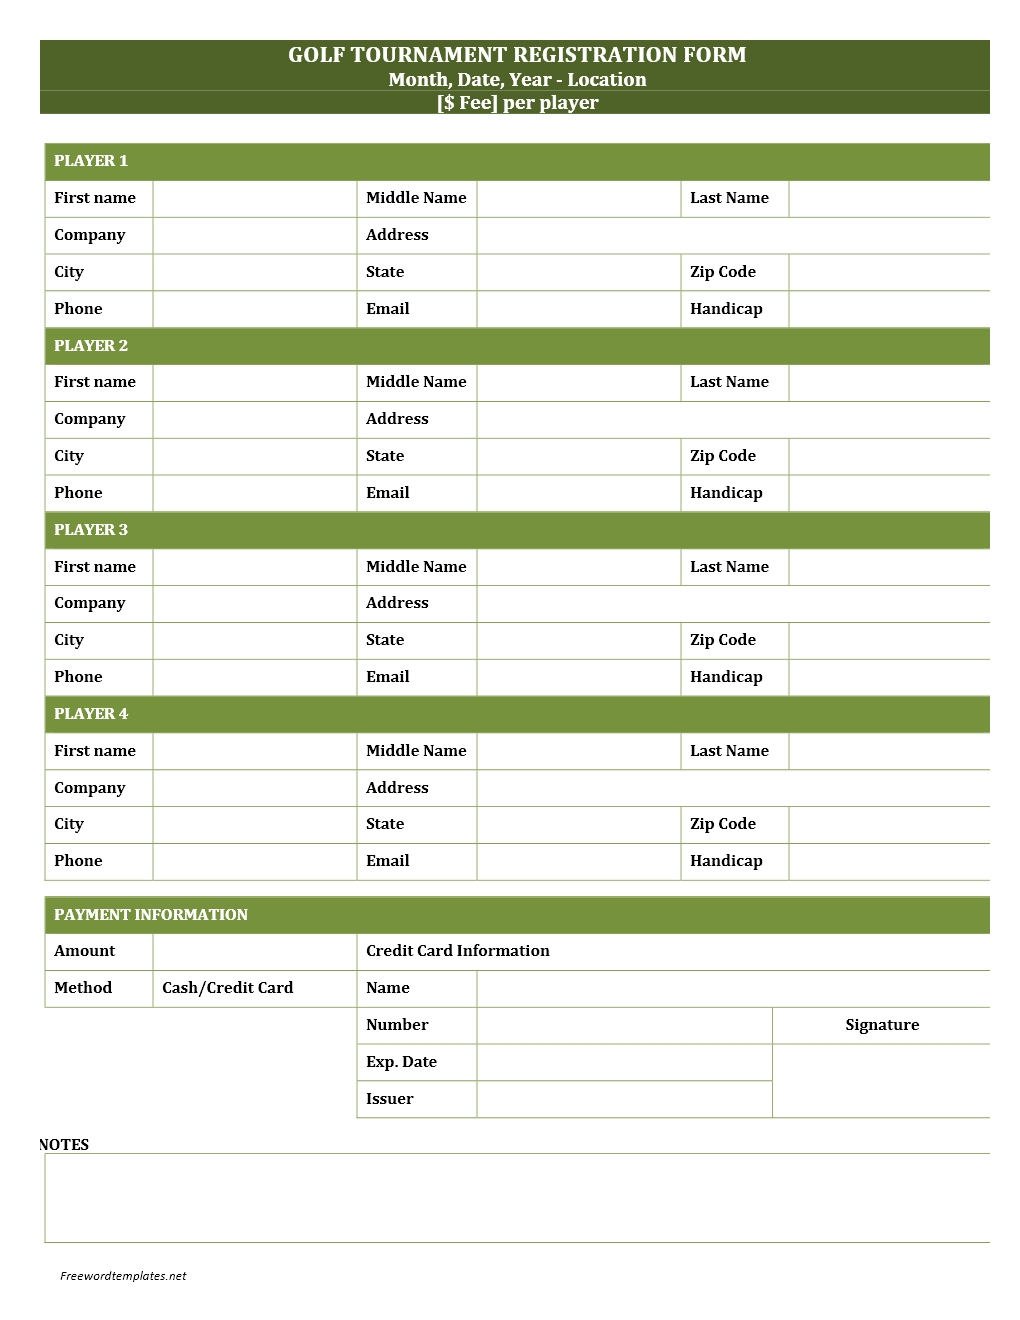 Golf Tournament Registration Form Template  Membership Forms Templates